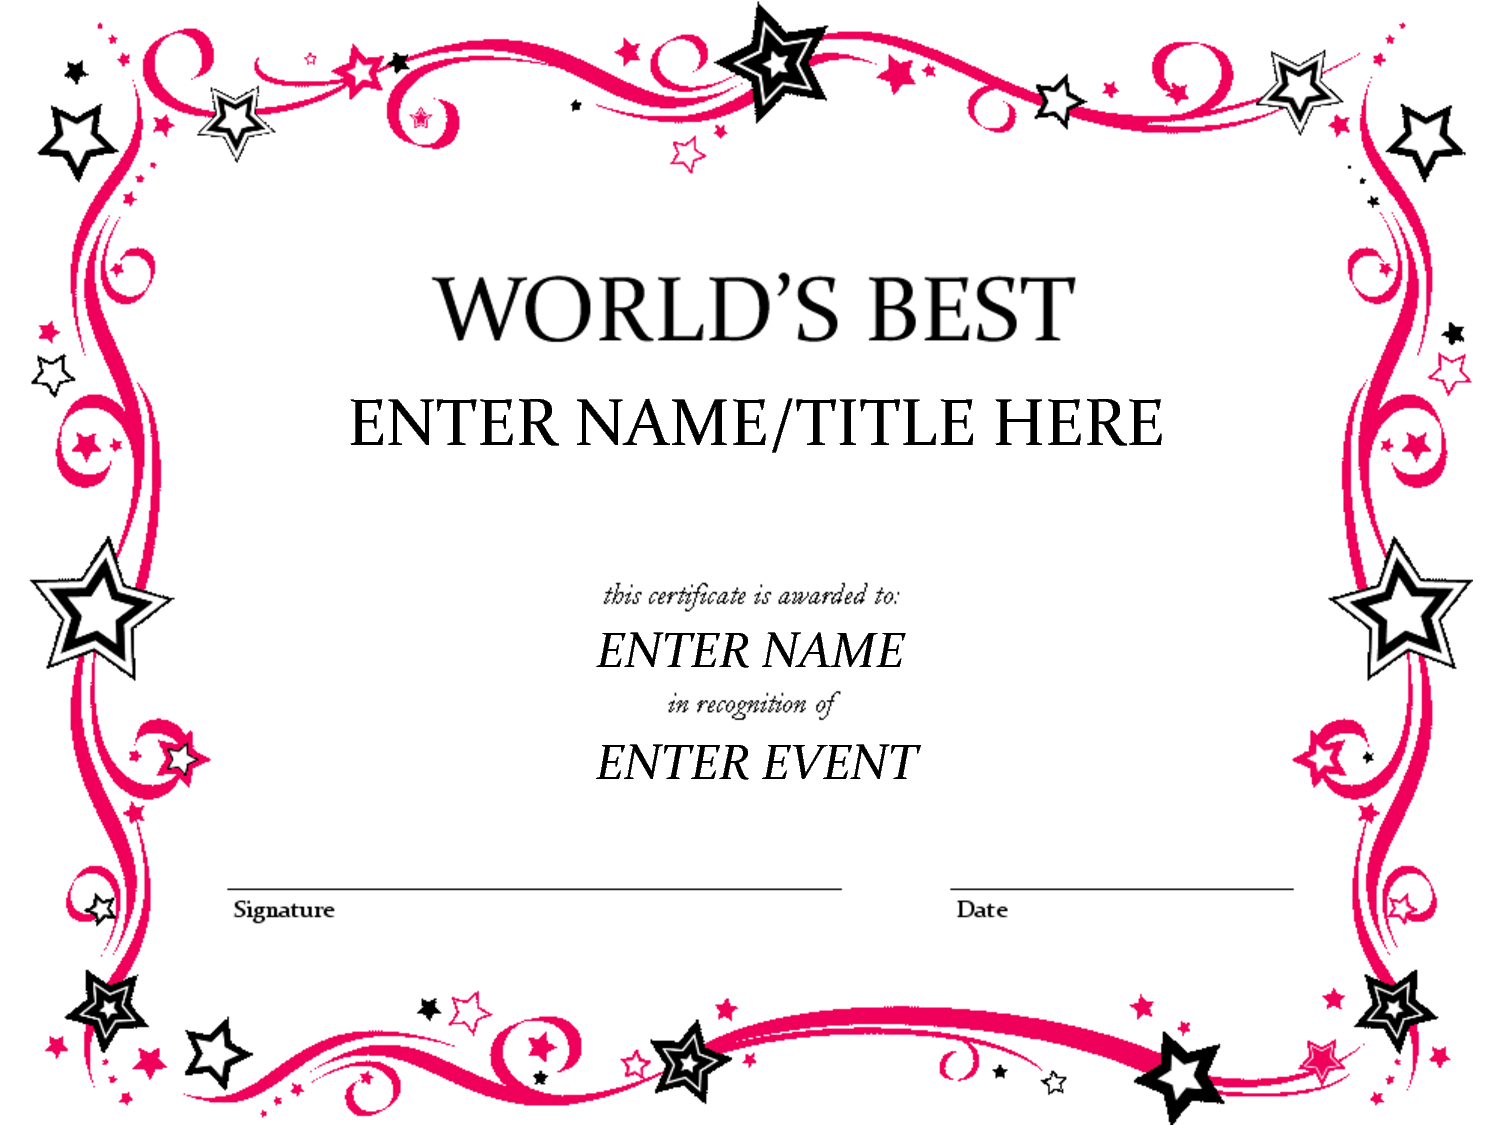 Award certificate template pinteres for Prize certificates templates free